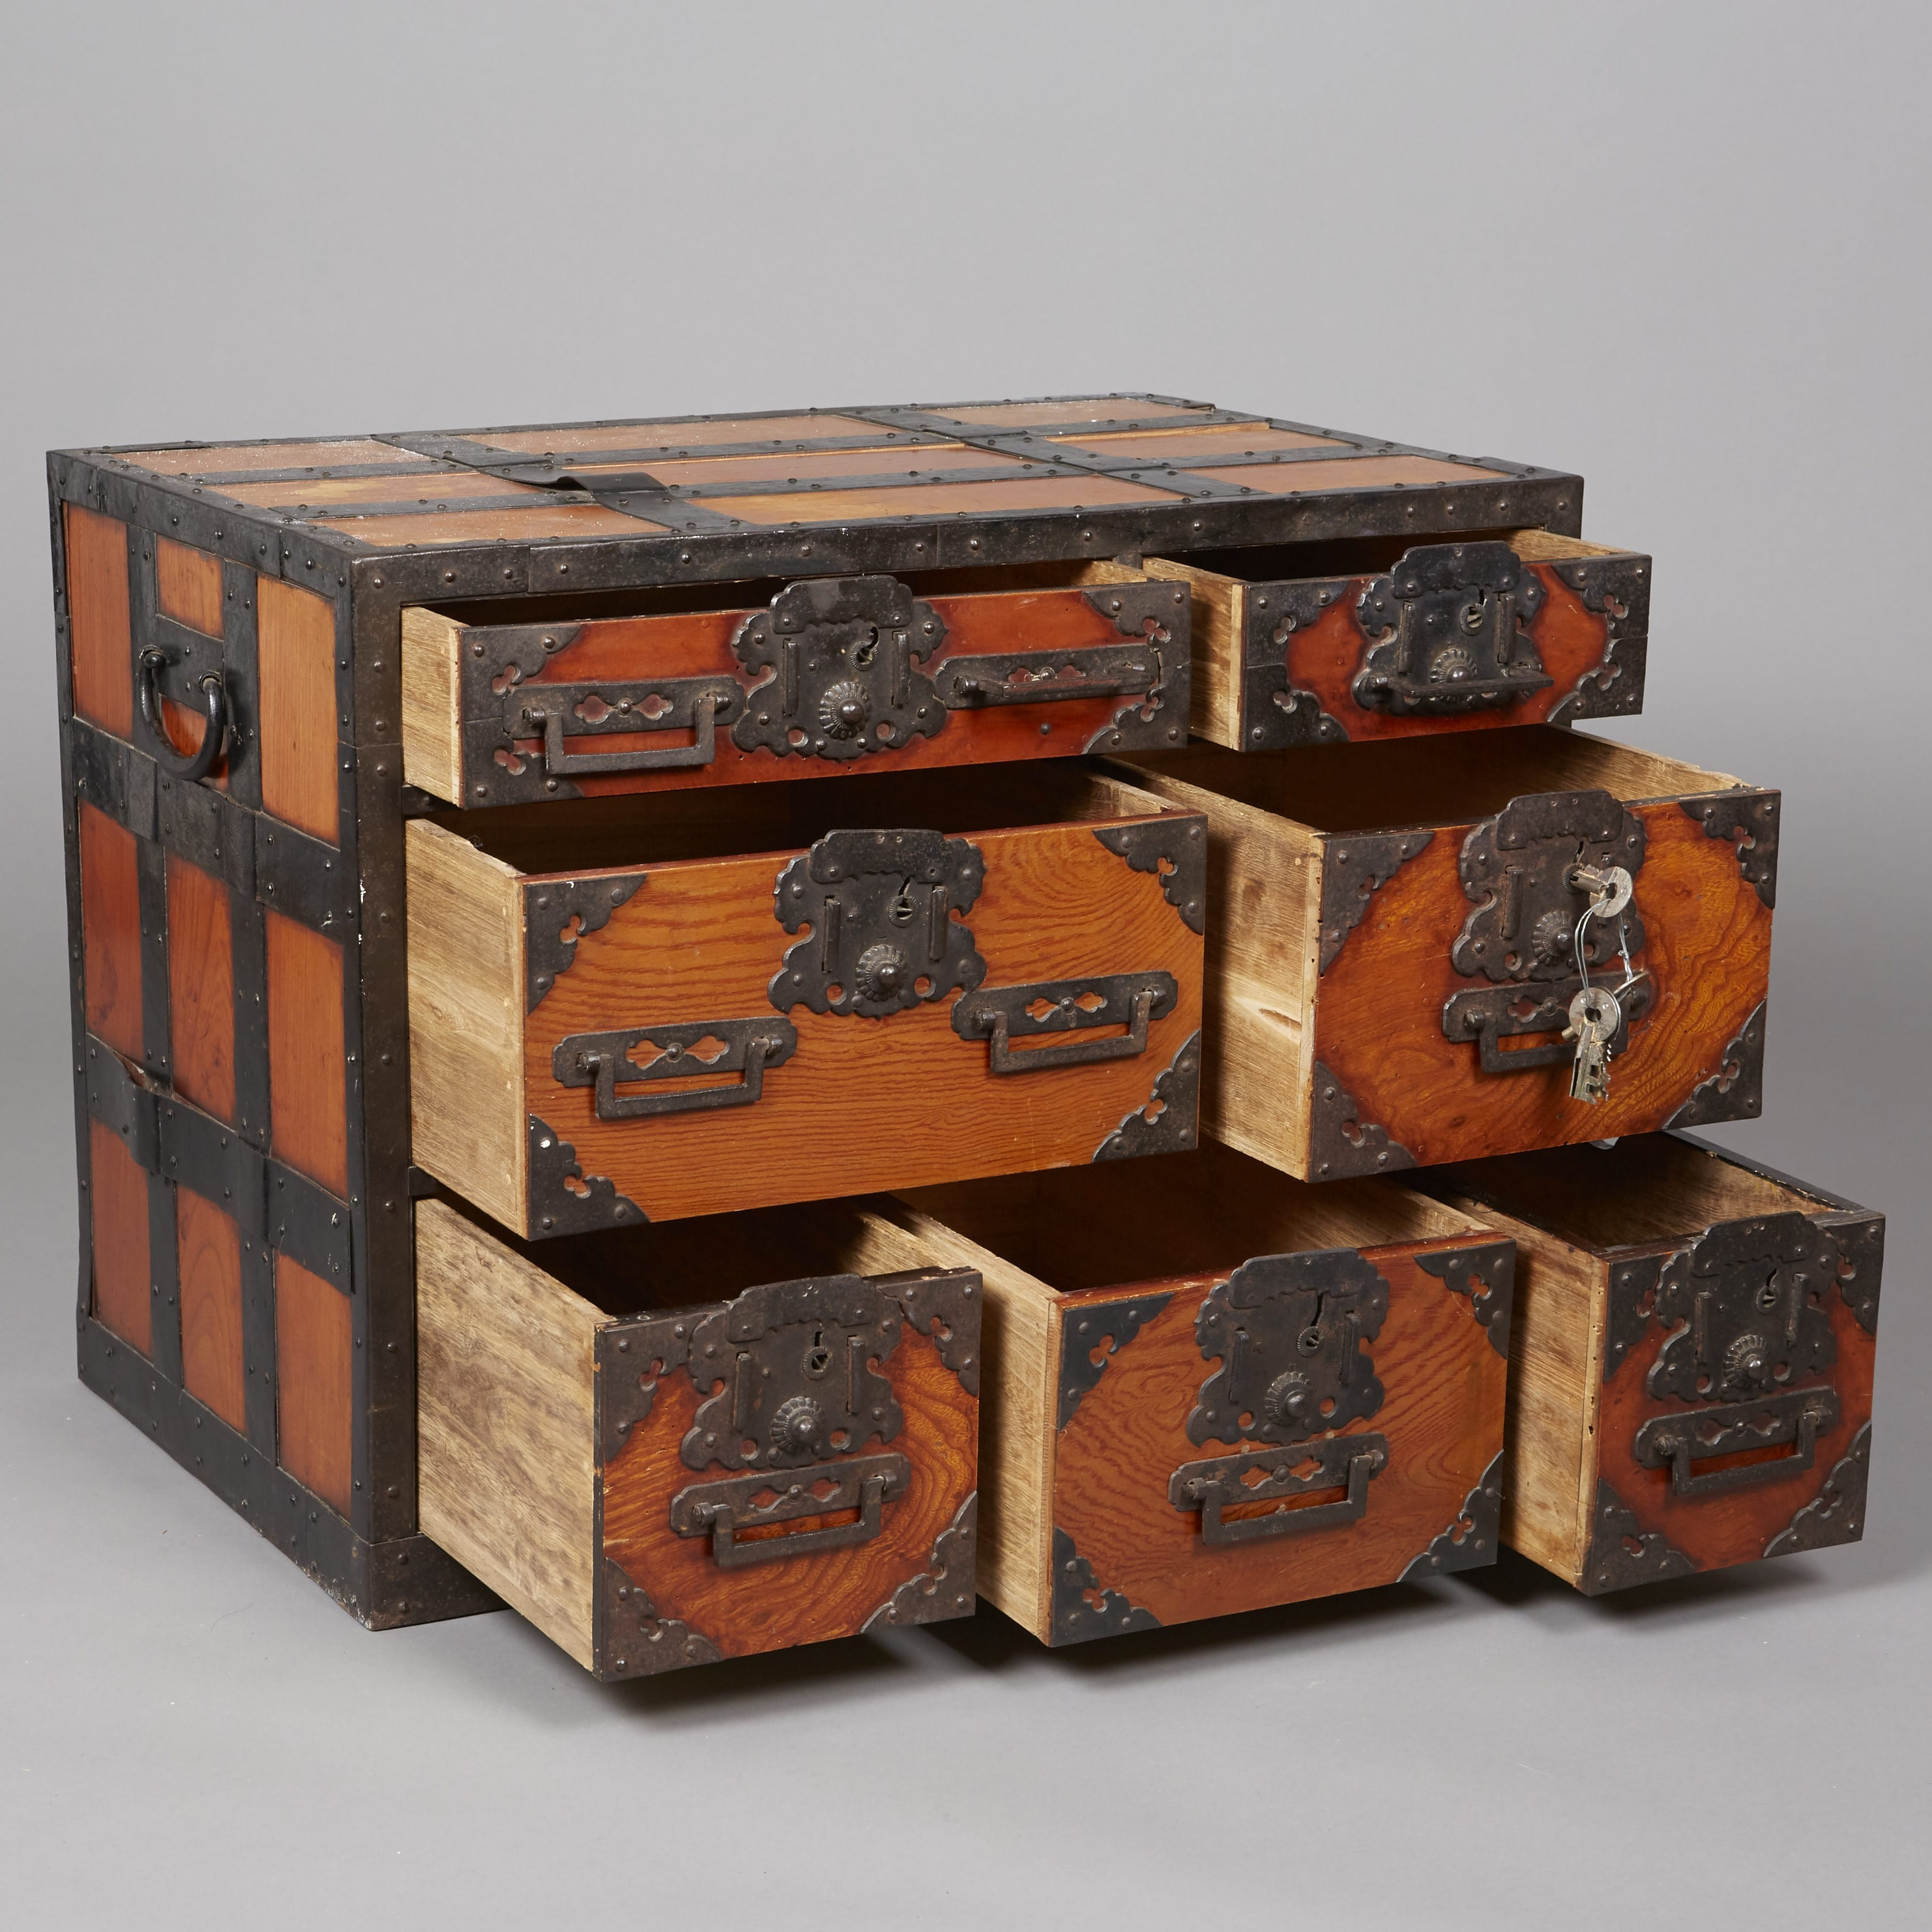 Lot 080: Japanese Meiji Period Tansu with Iron fittings